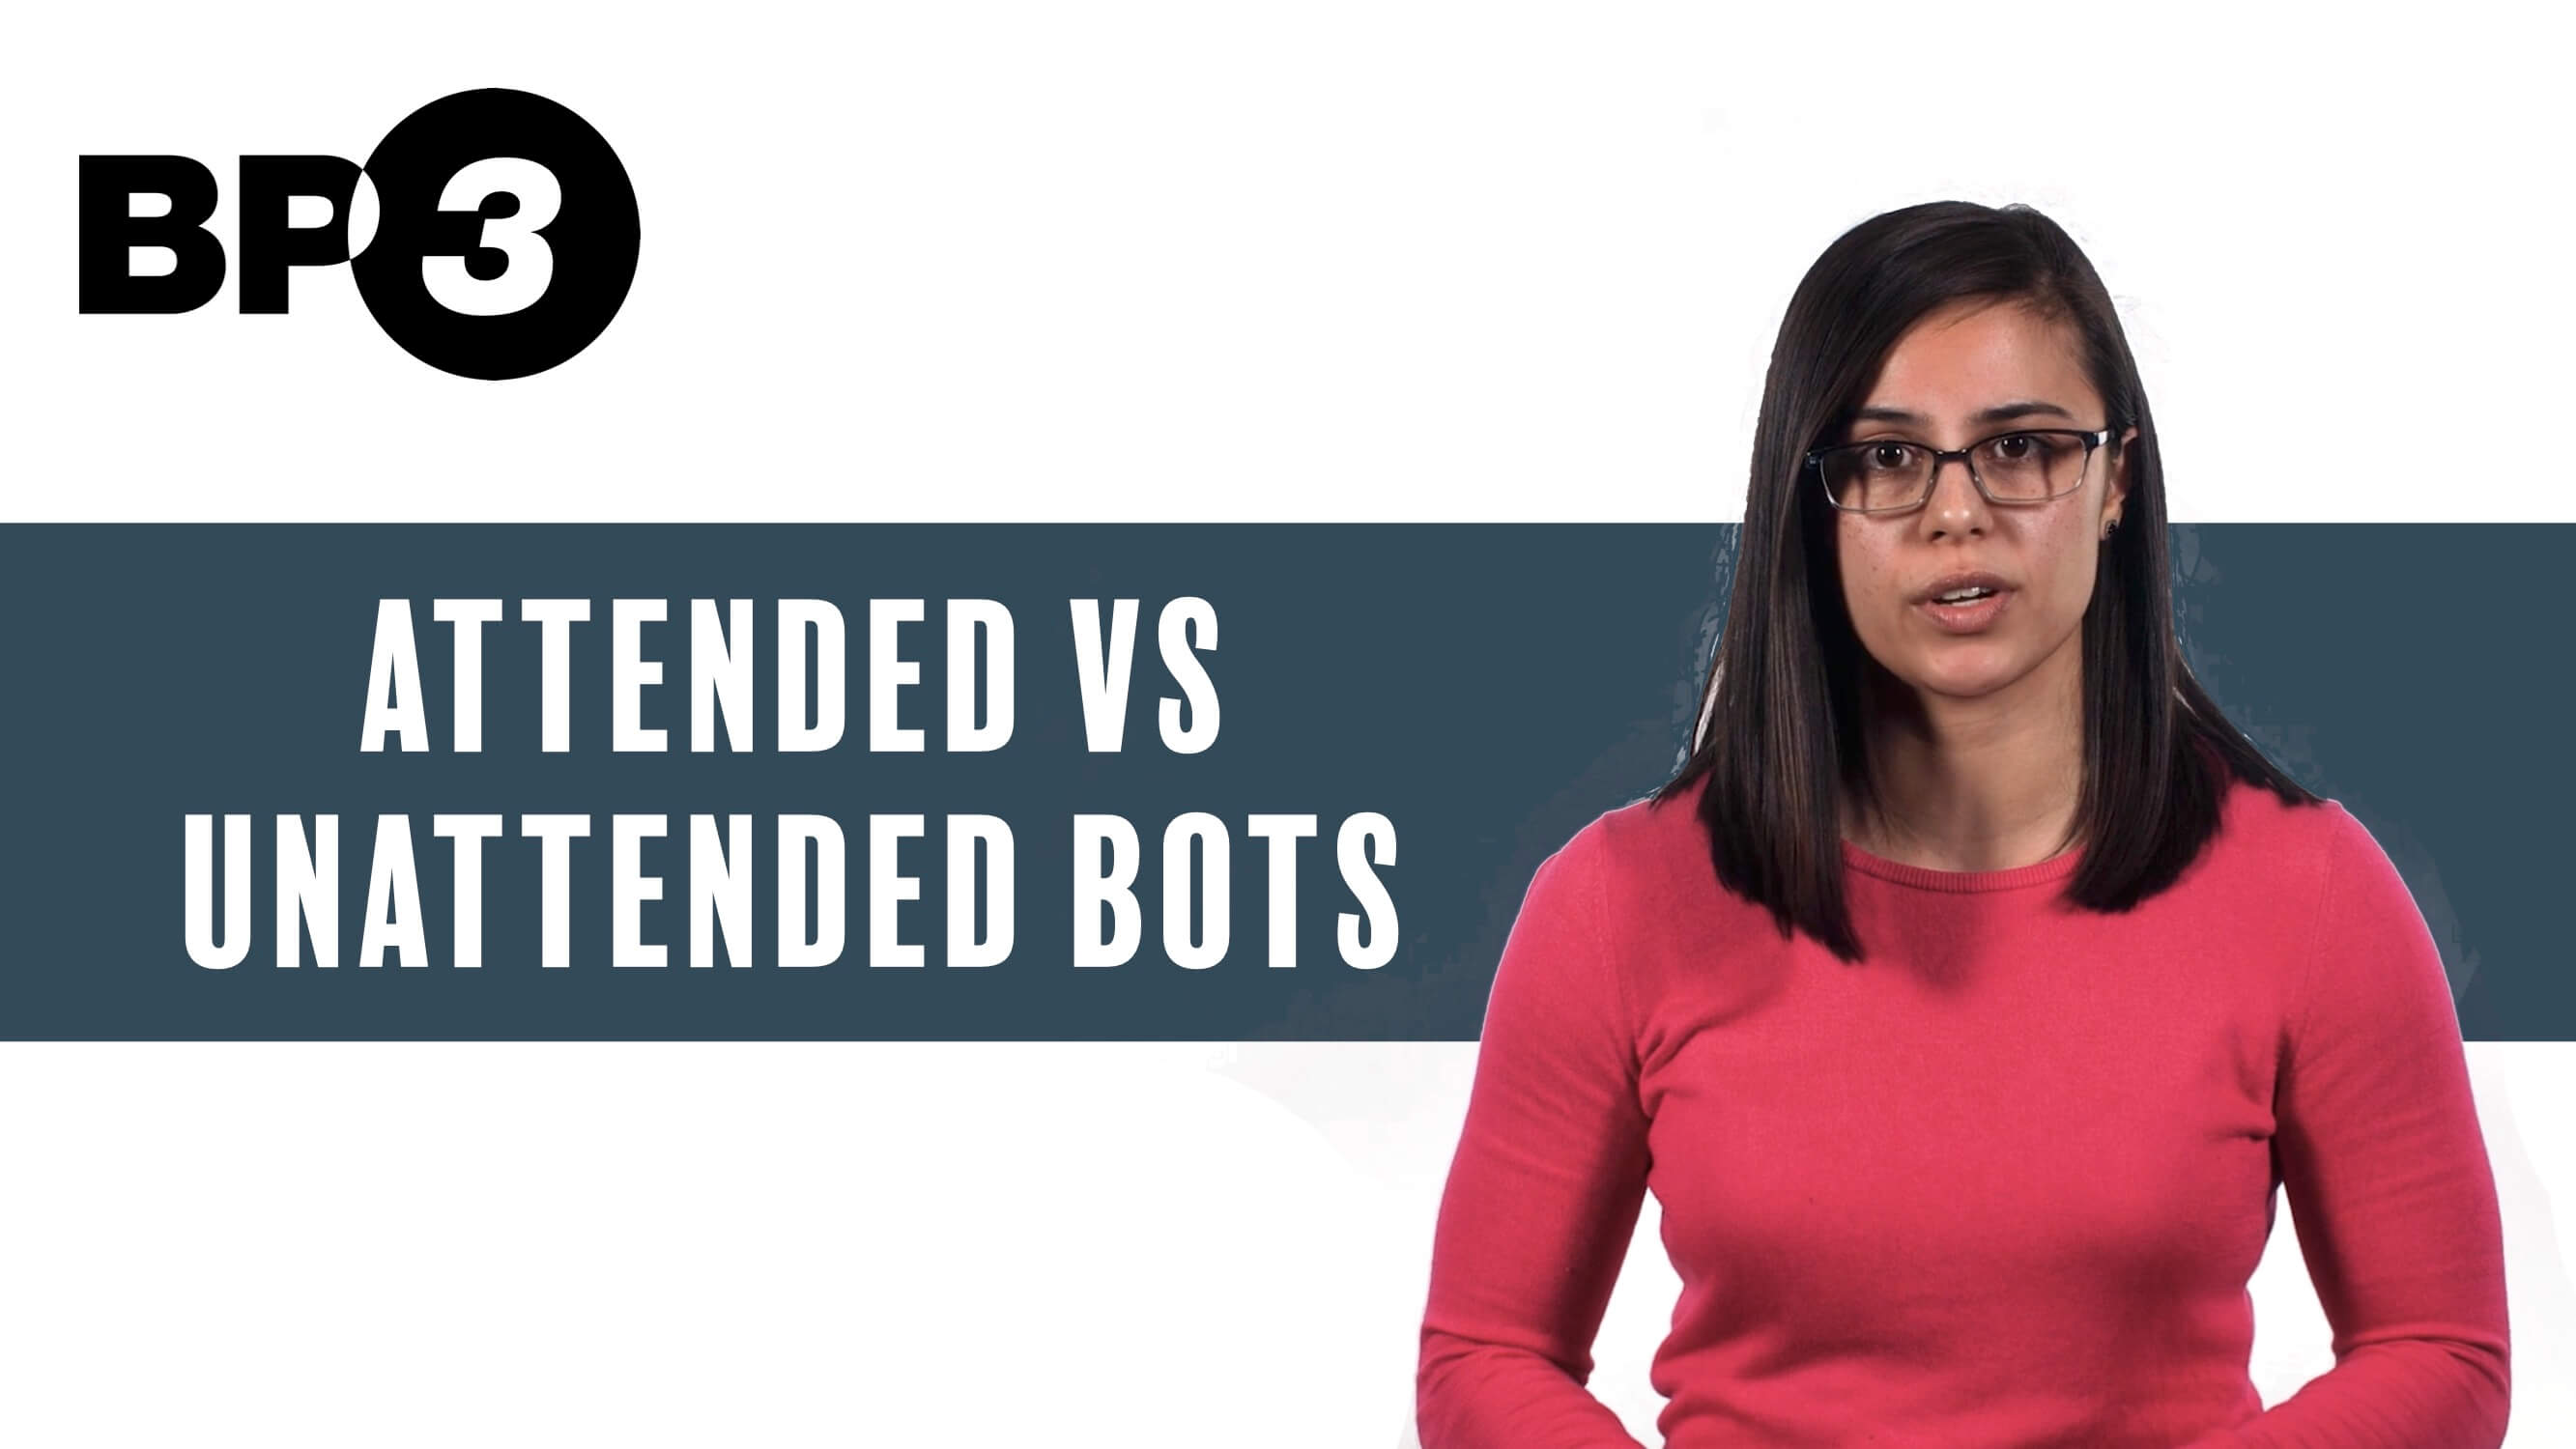 Attended vs Unattended Bots